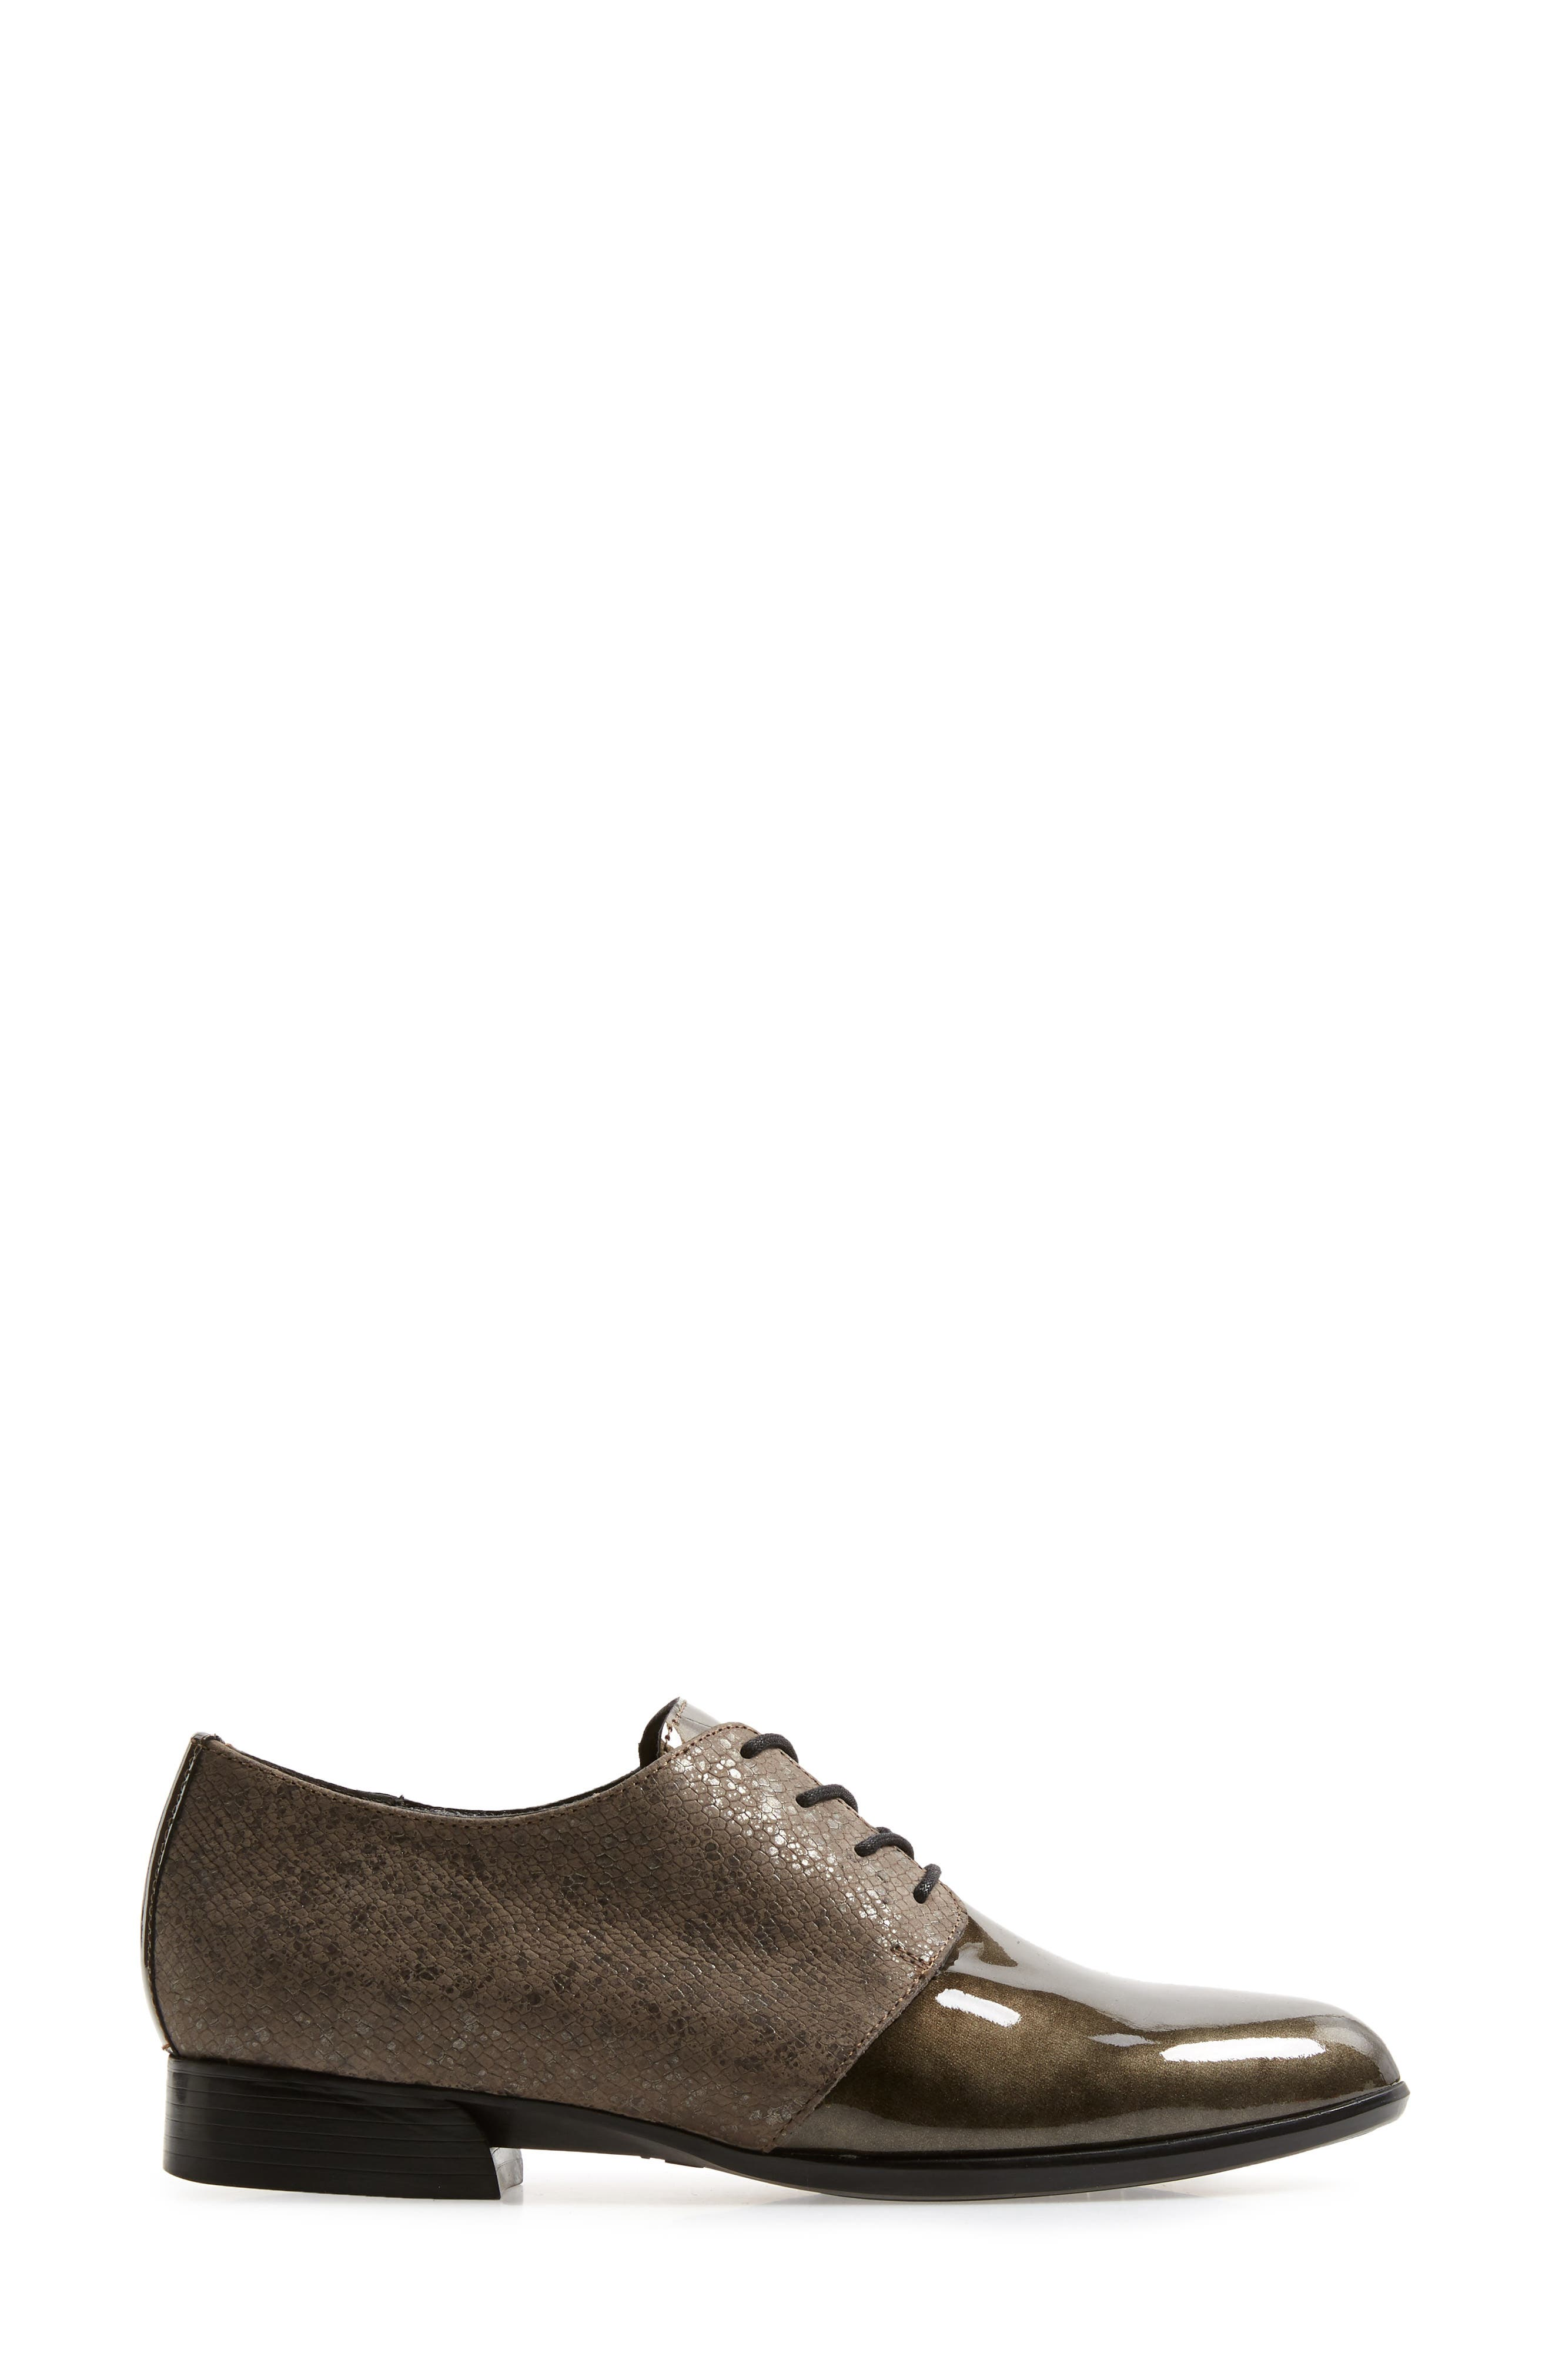 Markella Derby,                             Alternate thumbnail 3, color,                             GREY PATENT LEATHER